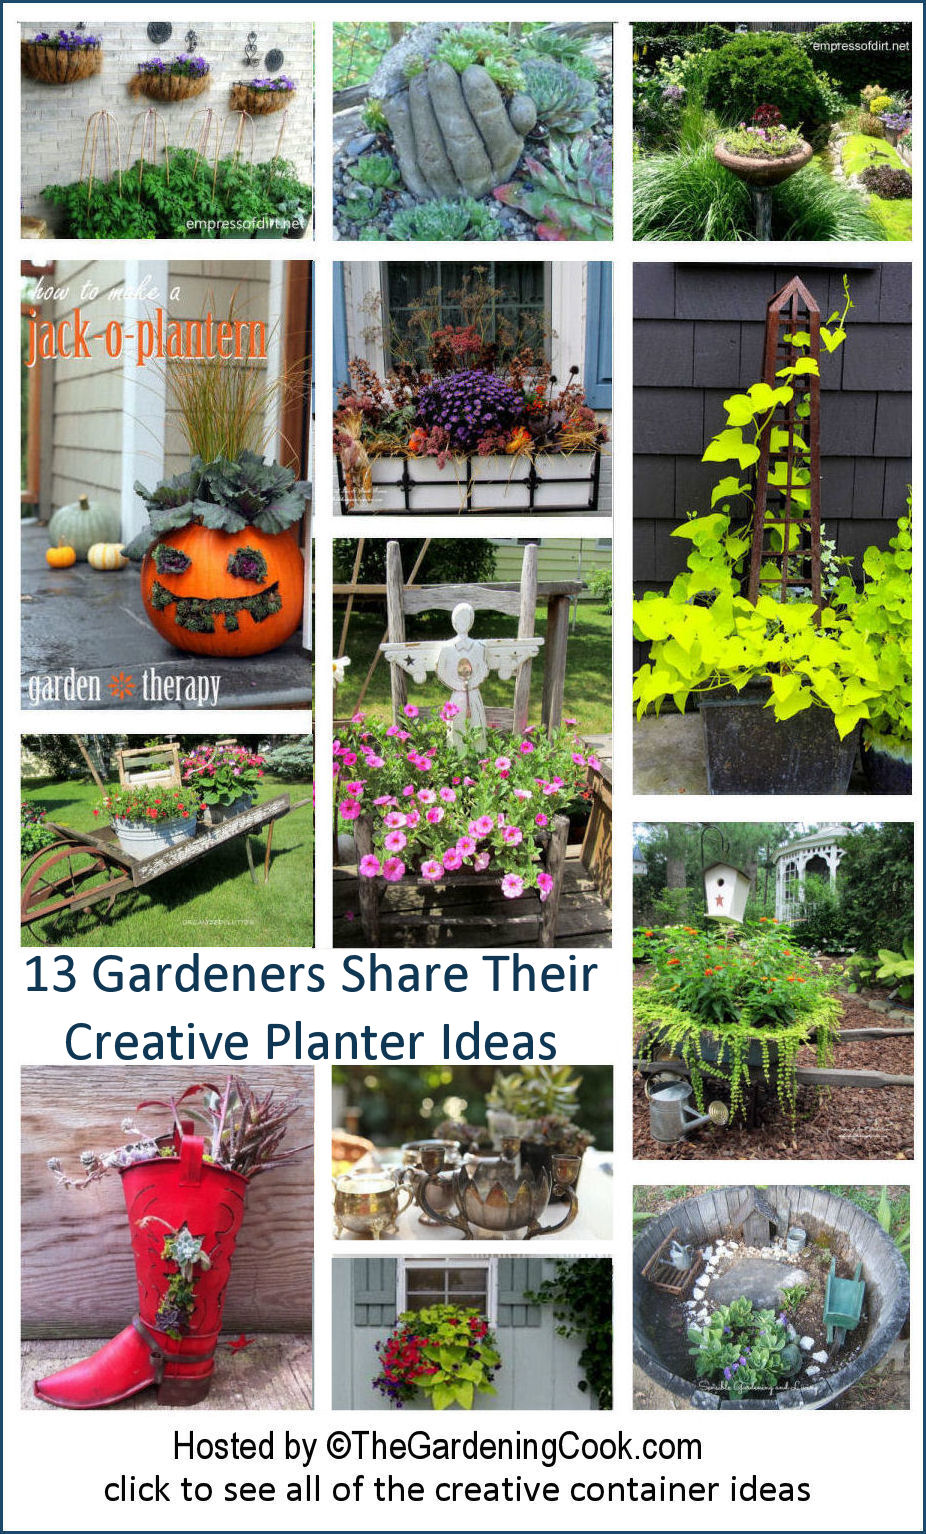 13 Garden Bloggers Share Creative Container and Planter Ideas - The ...